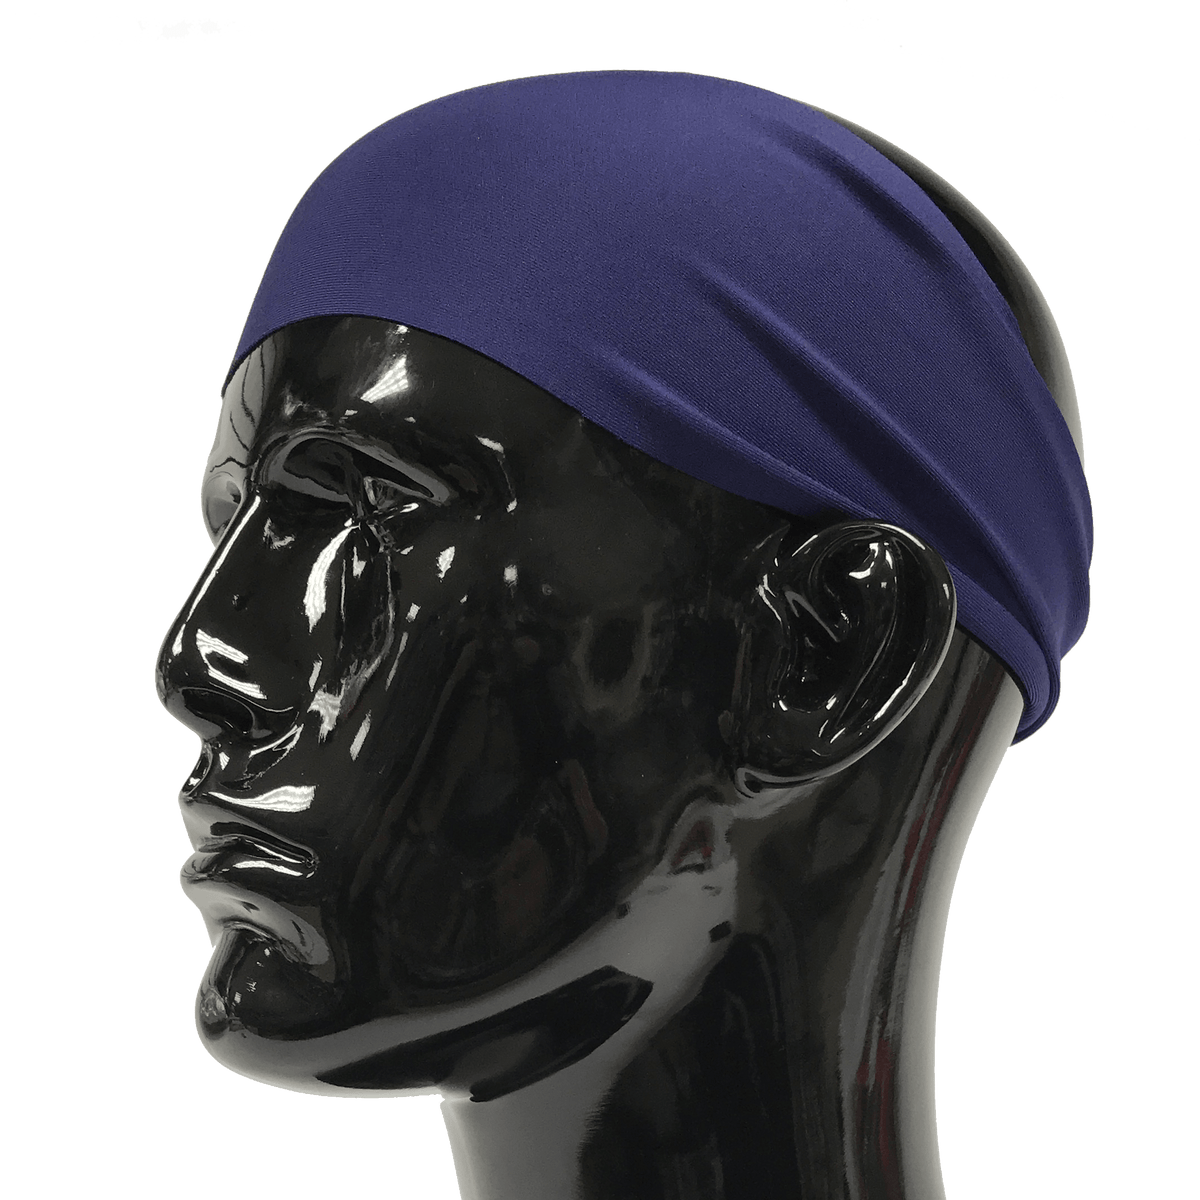 Performance Sweatband with Temp-Dry technology